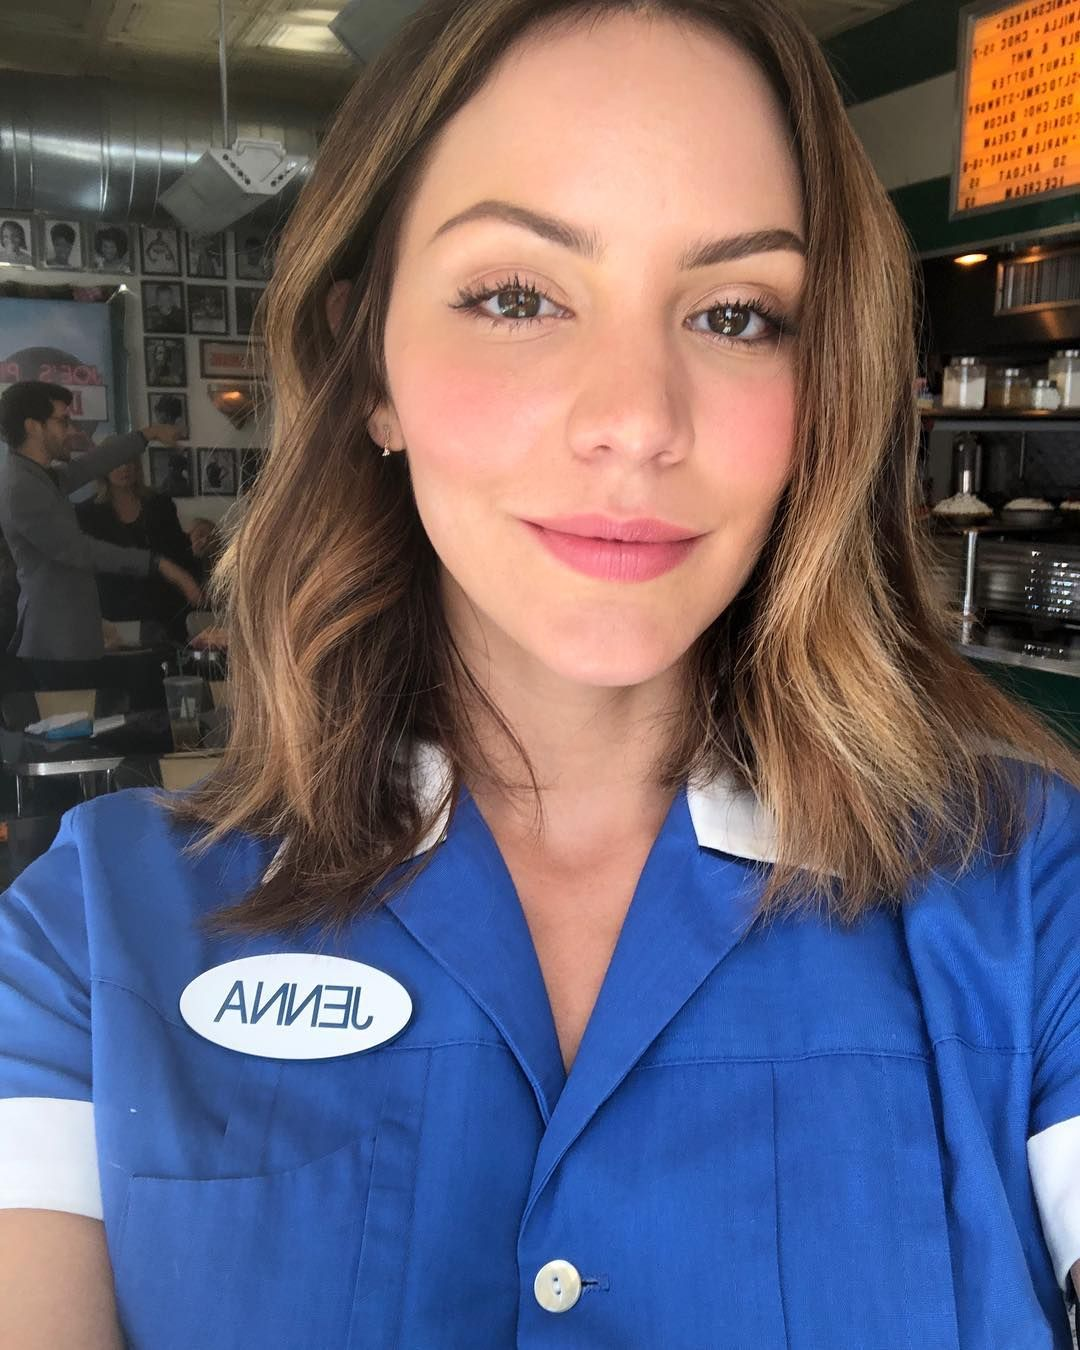 Pin By Caitlyn Freeman On A Dream Is A Soft Place To Land Waitress Katharine Mcphee Waitress Musical